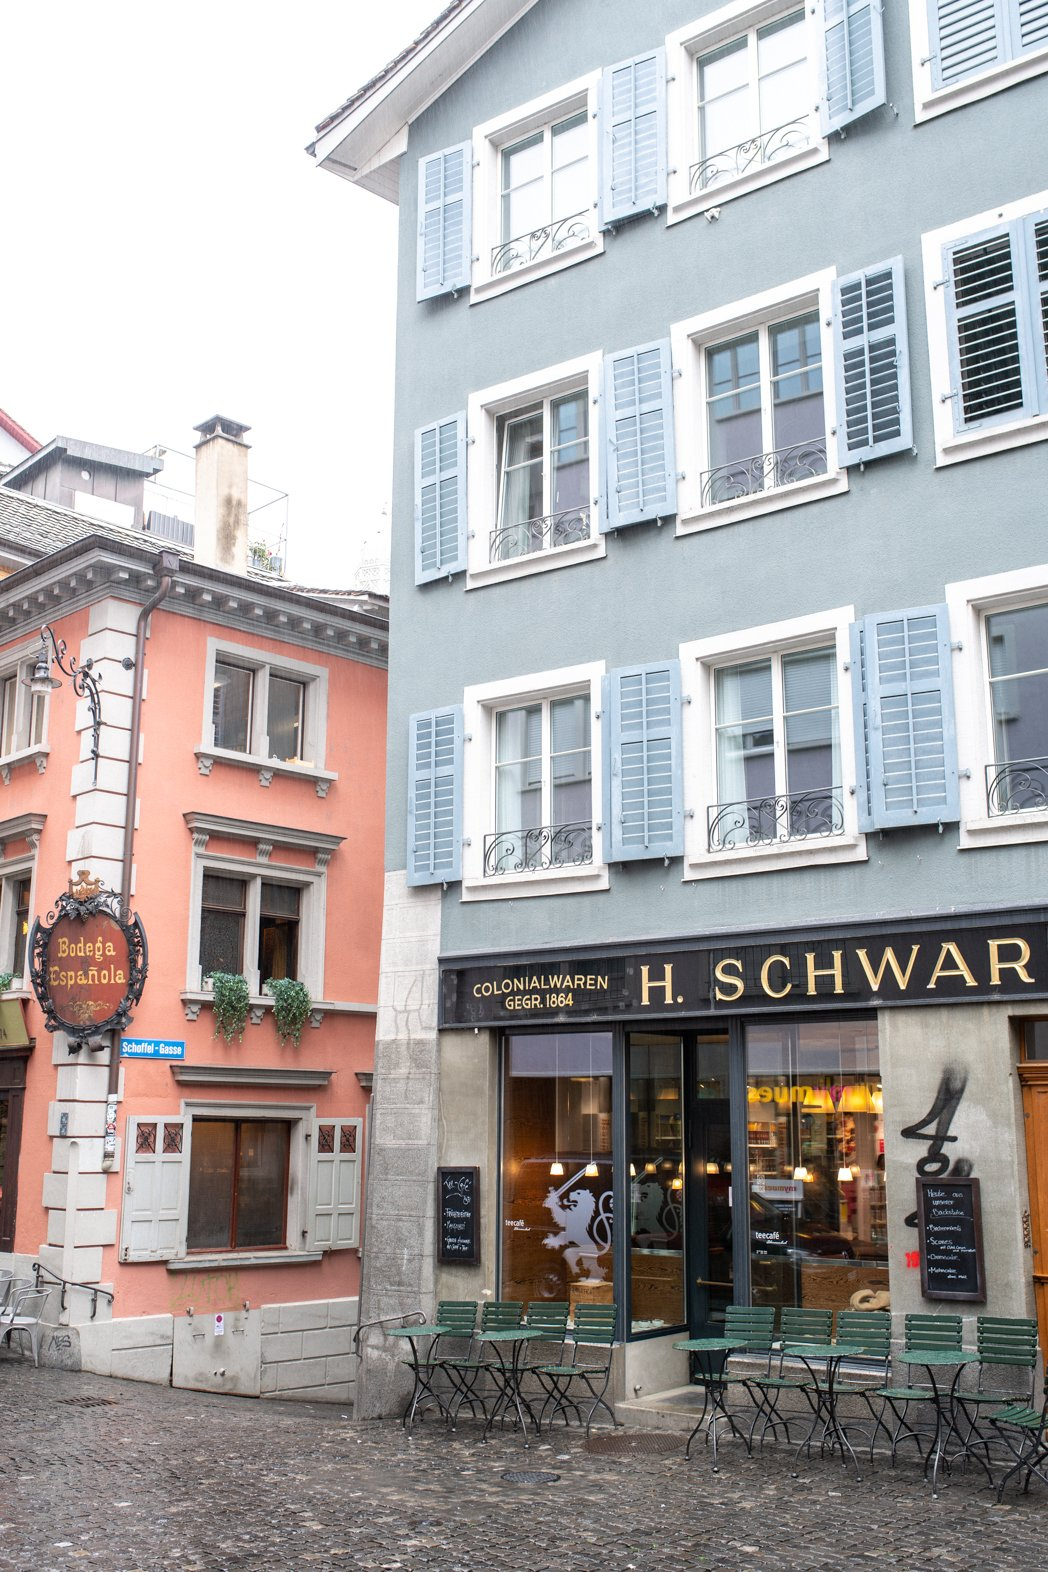 Stacie Flinner Zurich City Guide-46.jpg